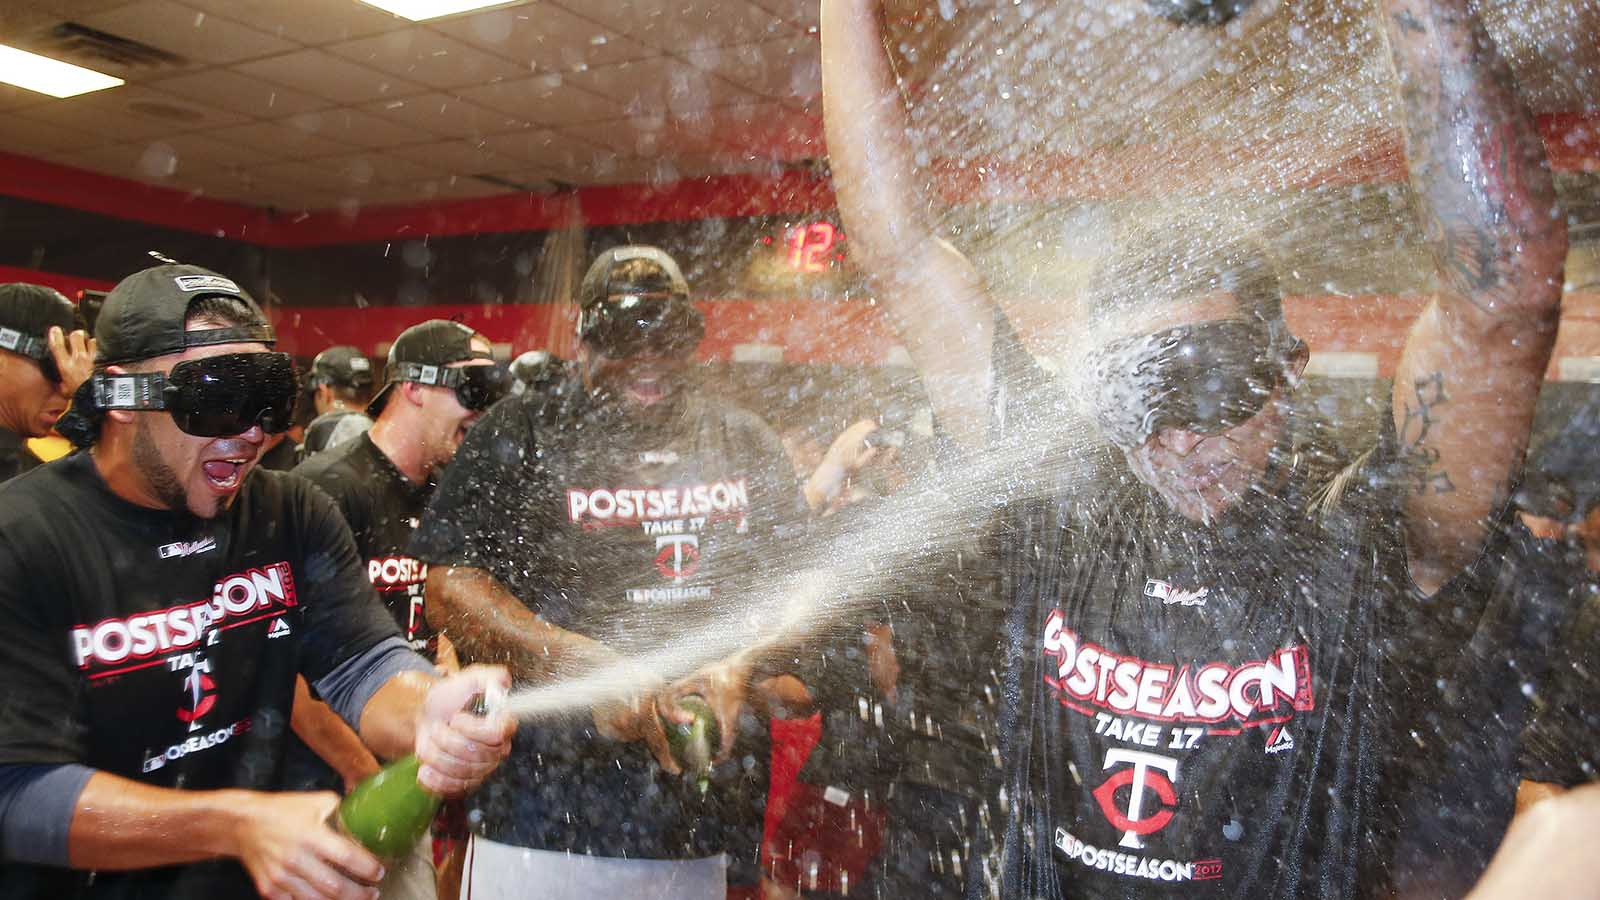 The Minnesota Twins celebrate early Thursday, Sept. 28, 2017, in Cleveland. The Twins earned an AL wild-card berth after the Los Angeles Angels lost to the Chicago White Sox. The Twins had lost 4-2 to the Cleveland Indians on Wednesday night. (AP Photo/Ron Schwane)